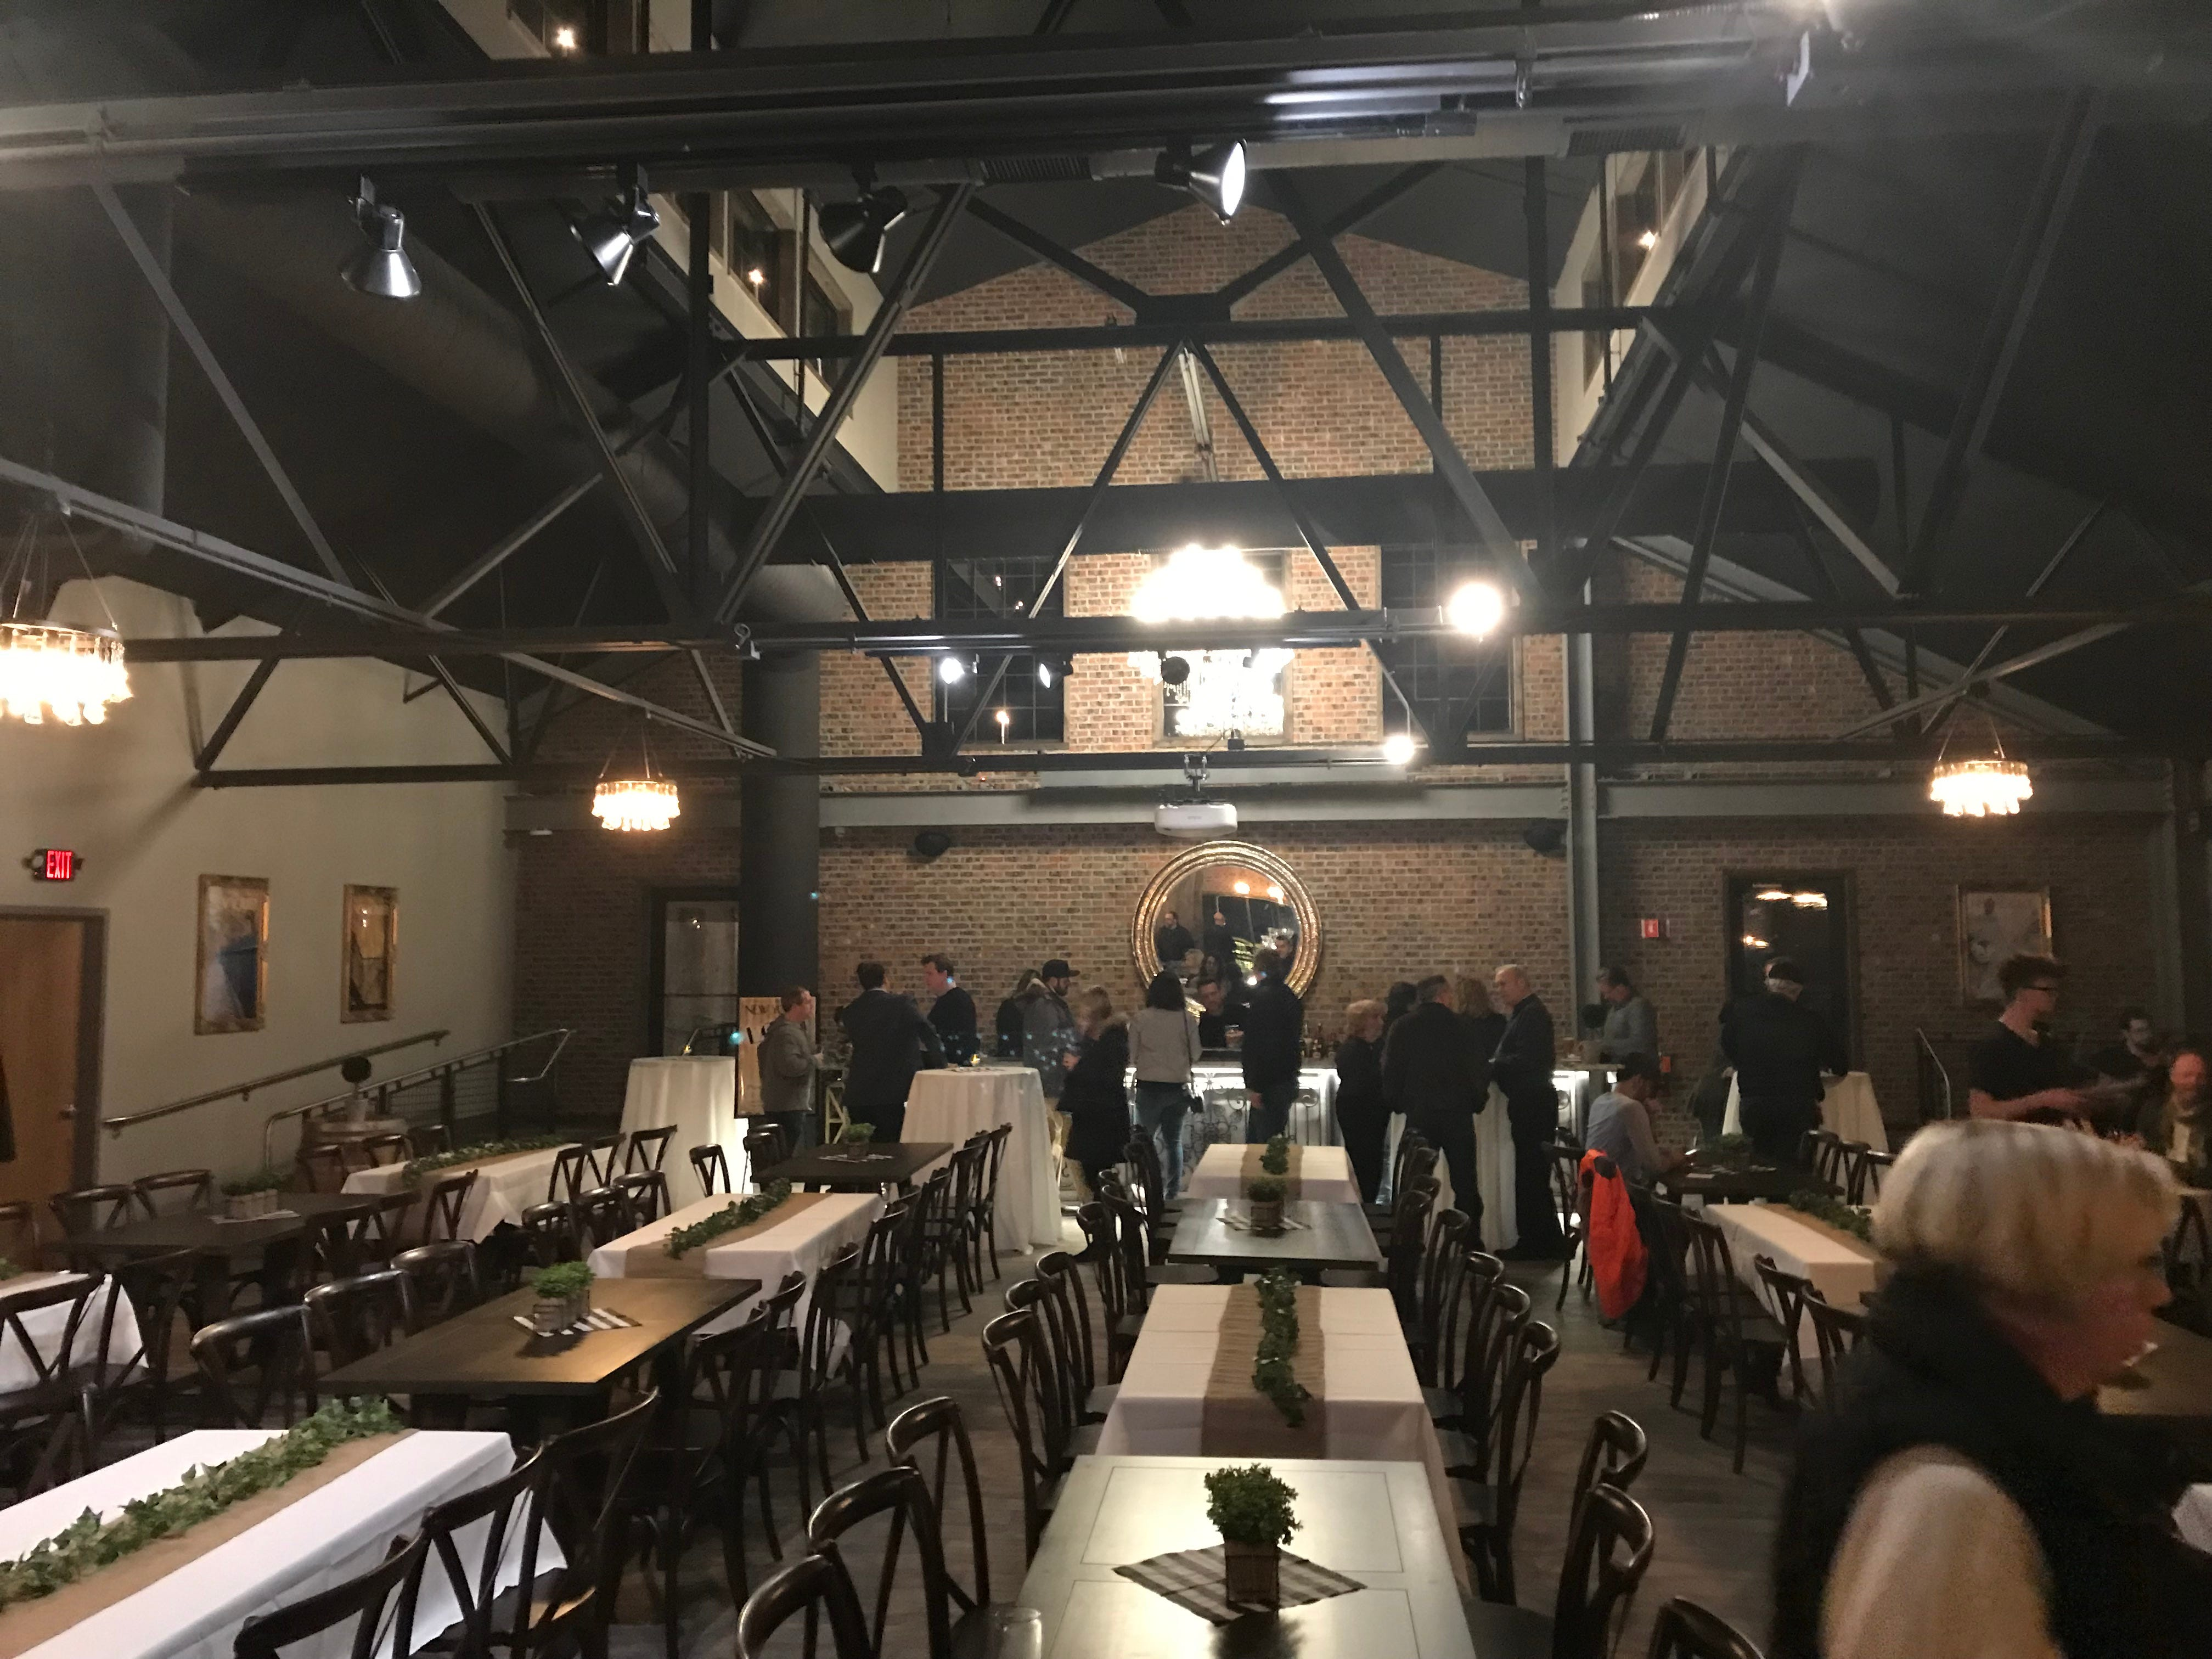 The second-floor event space at the New York Beer Project in Victor features a private bar and access to a rooftop patio.